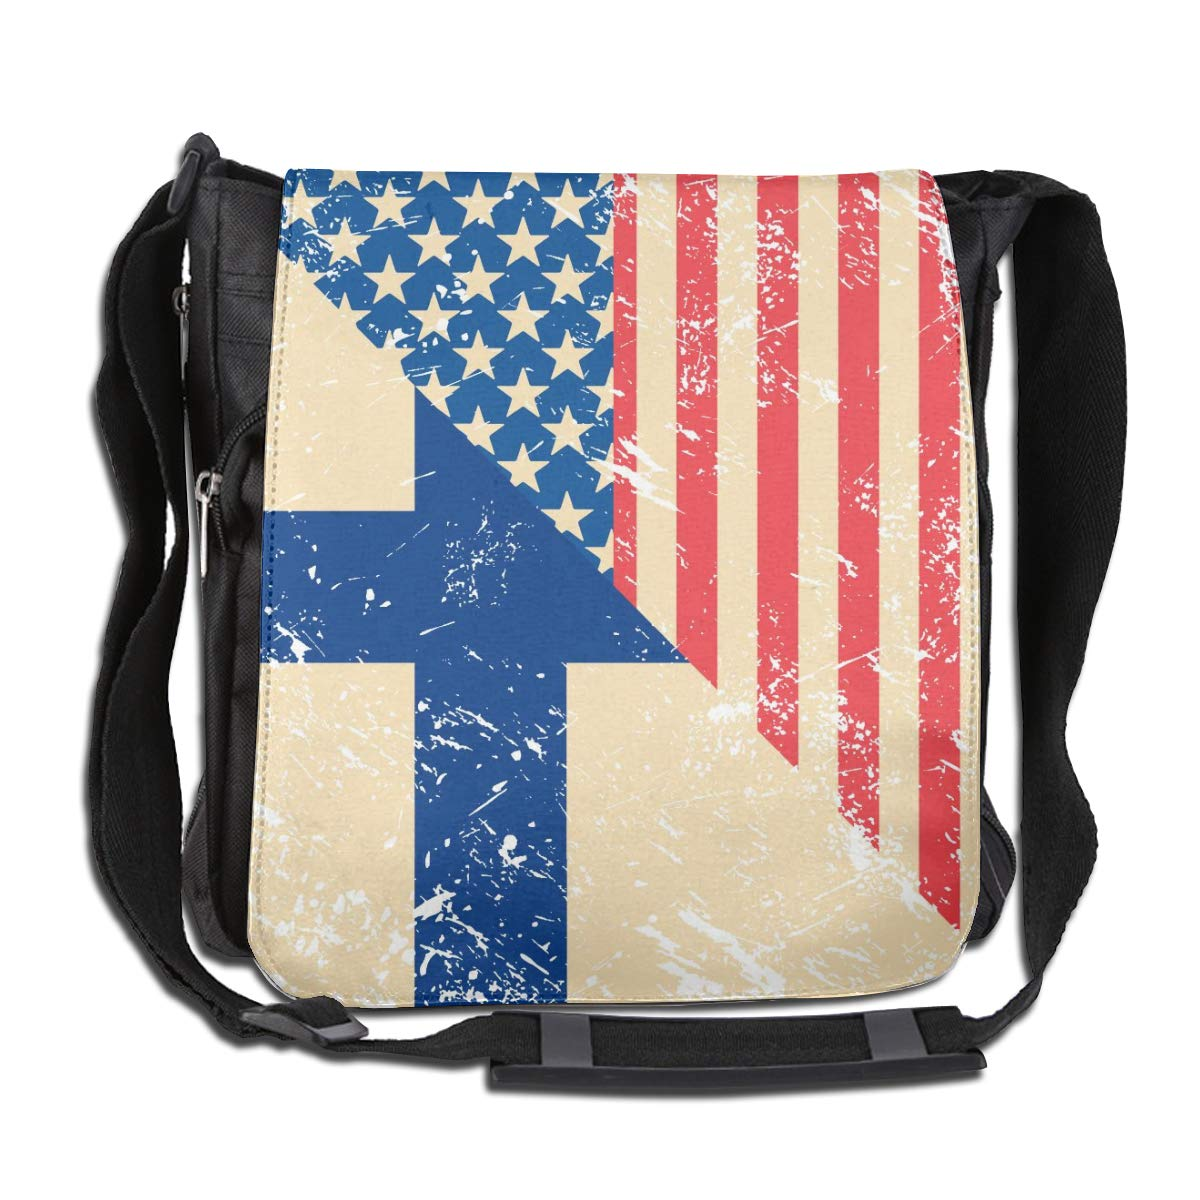 Unisex Casual Satchel Messenger Bags American And Finland Retro Flag Crossbody Shoulder Bag Traveling Bag For School//Work//Trips